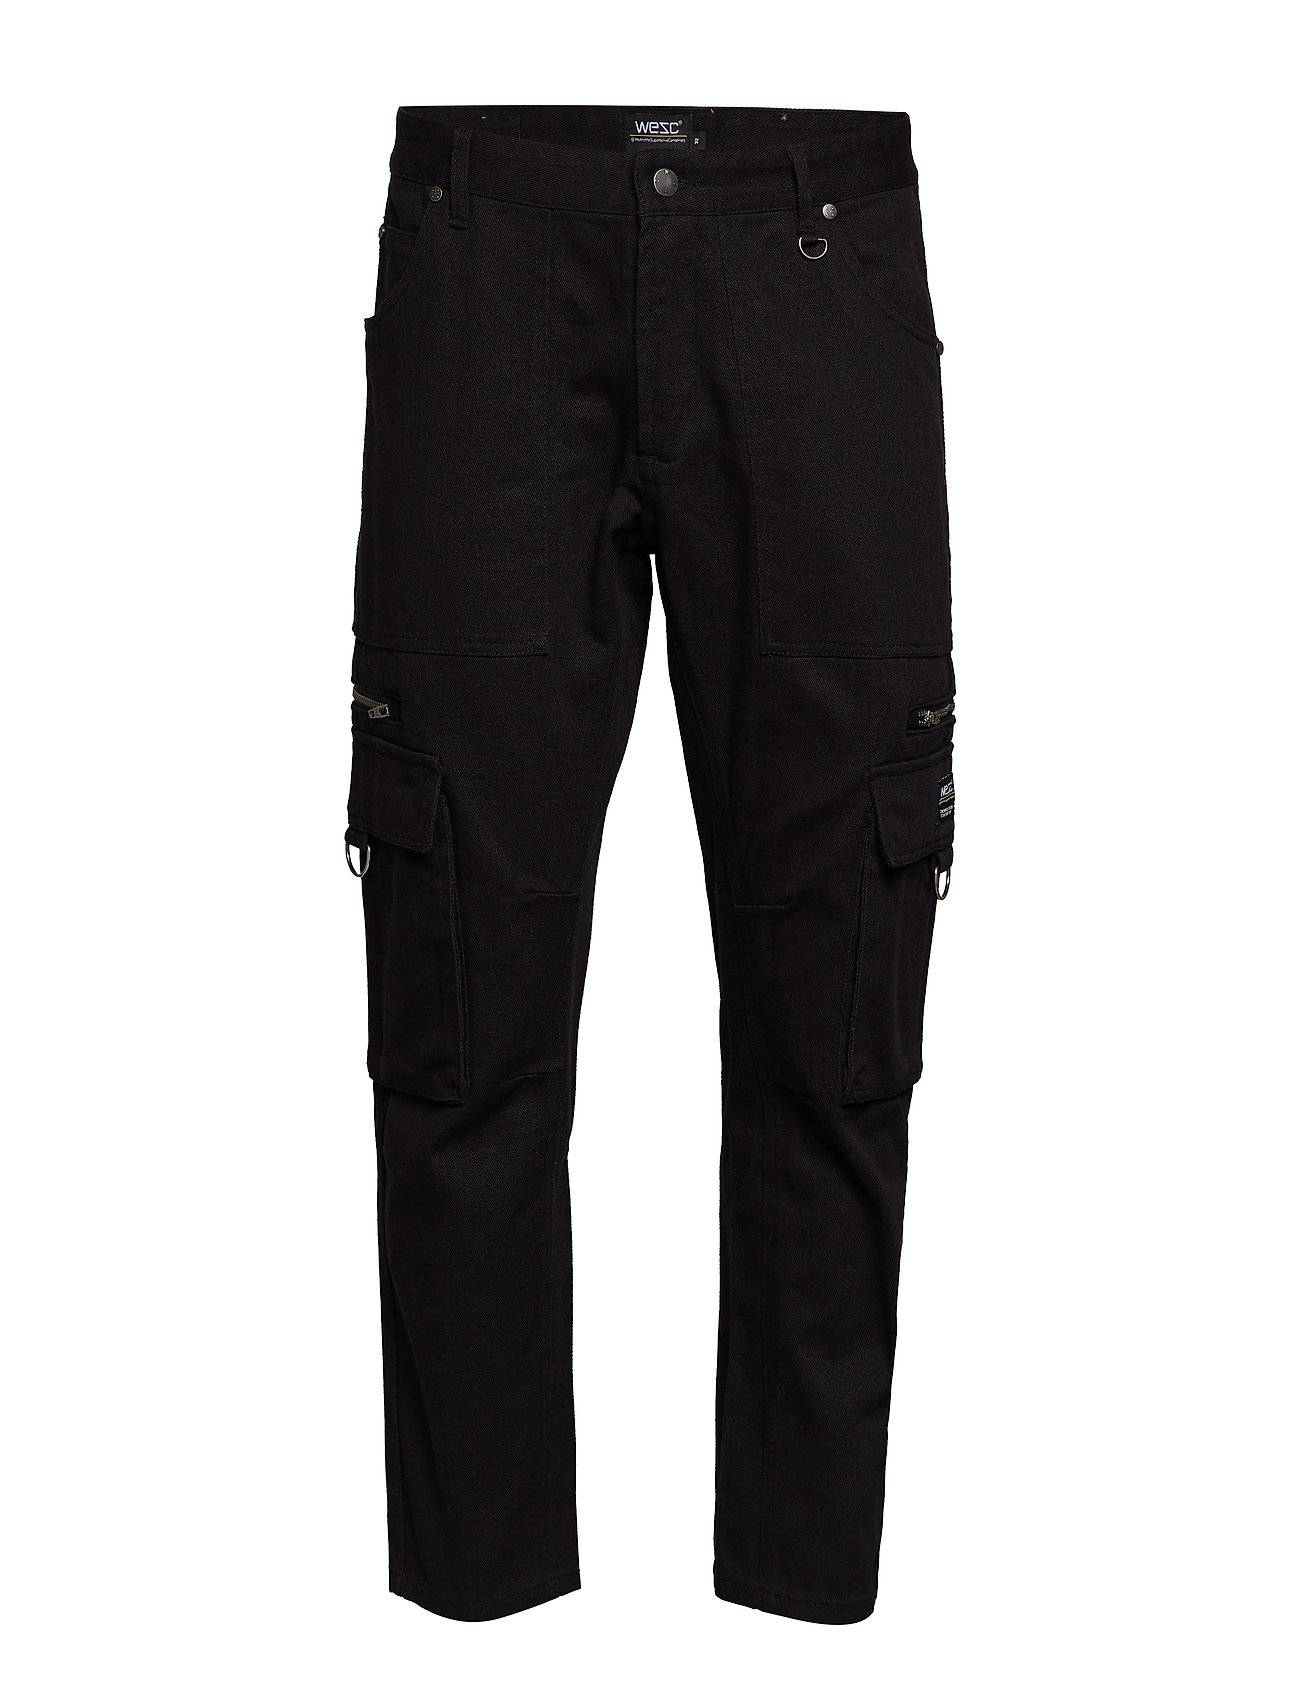 WeSC Tapered Utility Pant Trousers Cargo Pants Musta WeSC